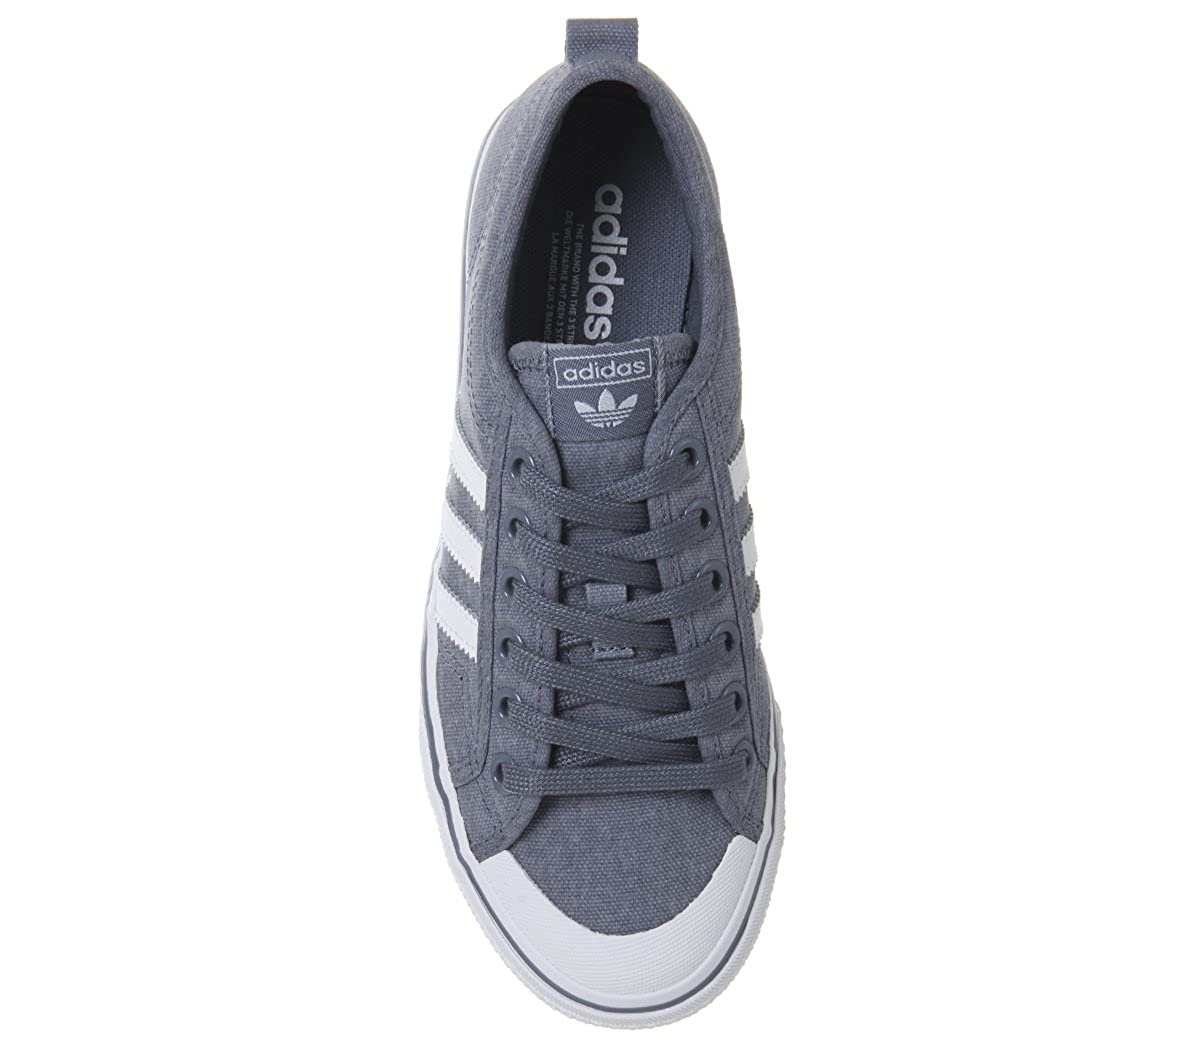 buy popular 1360d 32720 adidas Originals Damen Sneaker Nizza W CQ2537 Grau Amazon.de Schuhe   Handtaschen